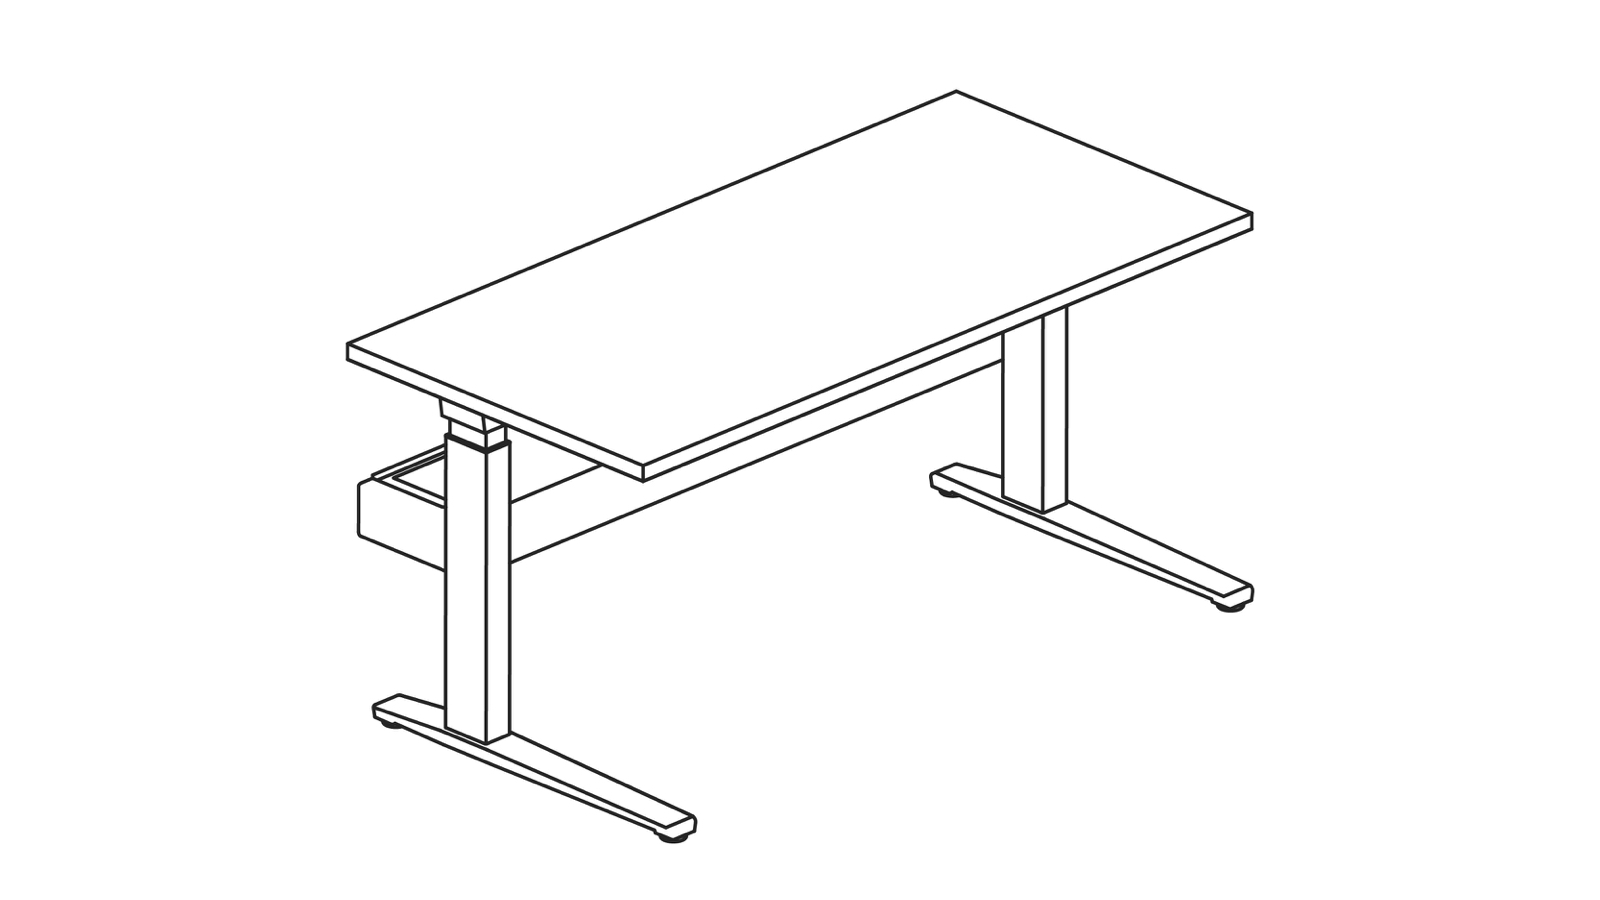 A line drawing of a Renew Link standing desk system in a single-sided rectangular bench configuration.